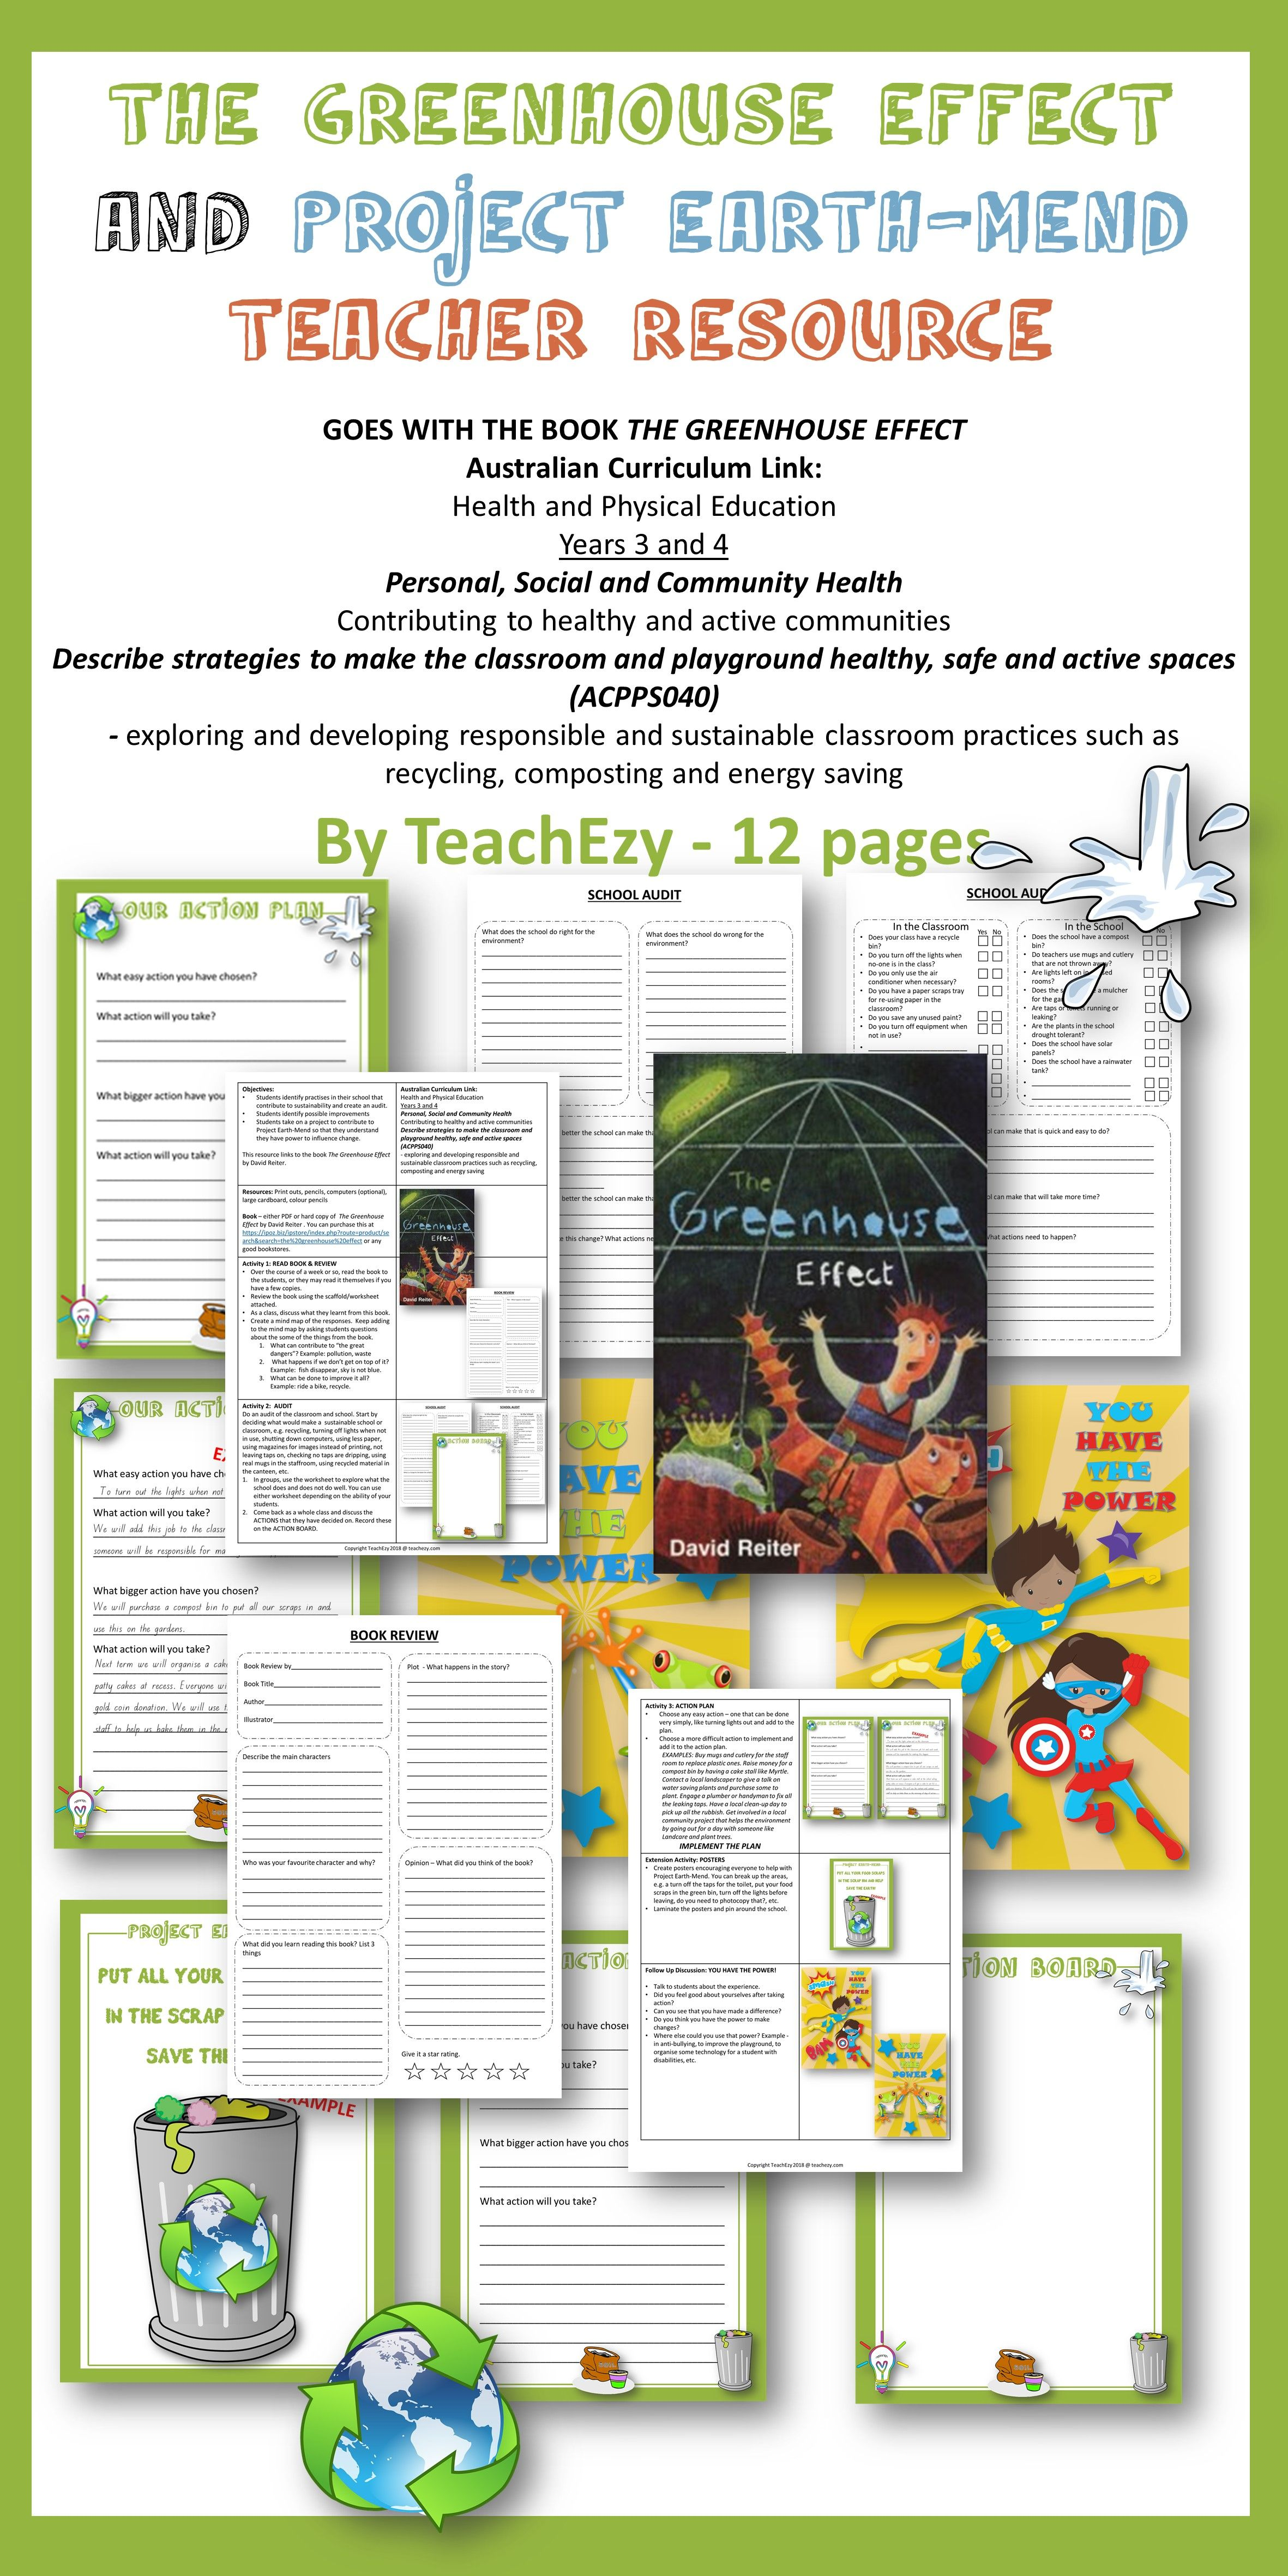 The Greenhouse Effect And Project Earth Mend Teacher